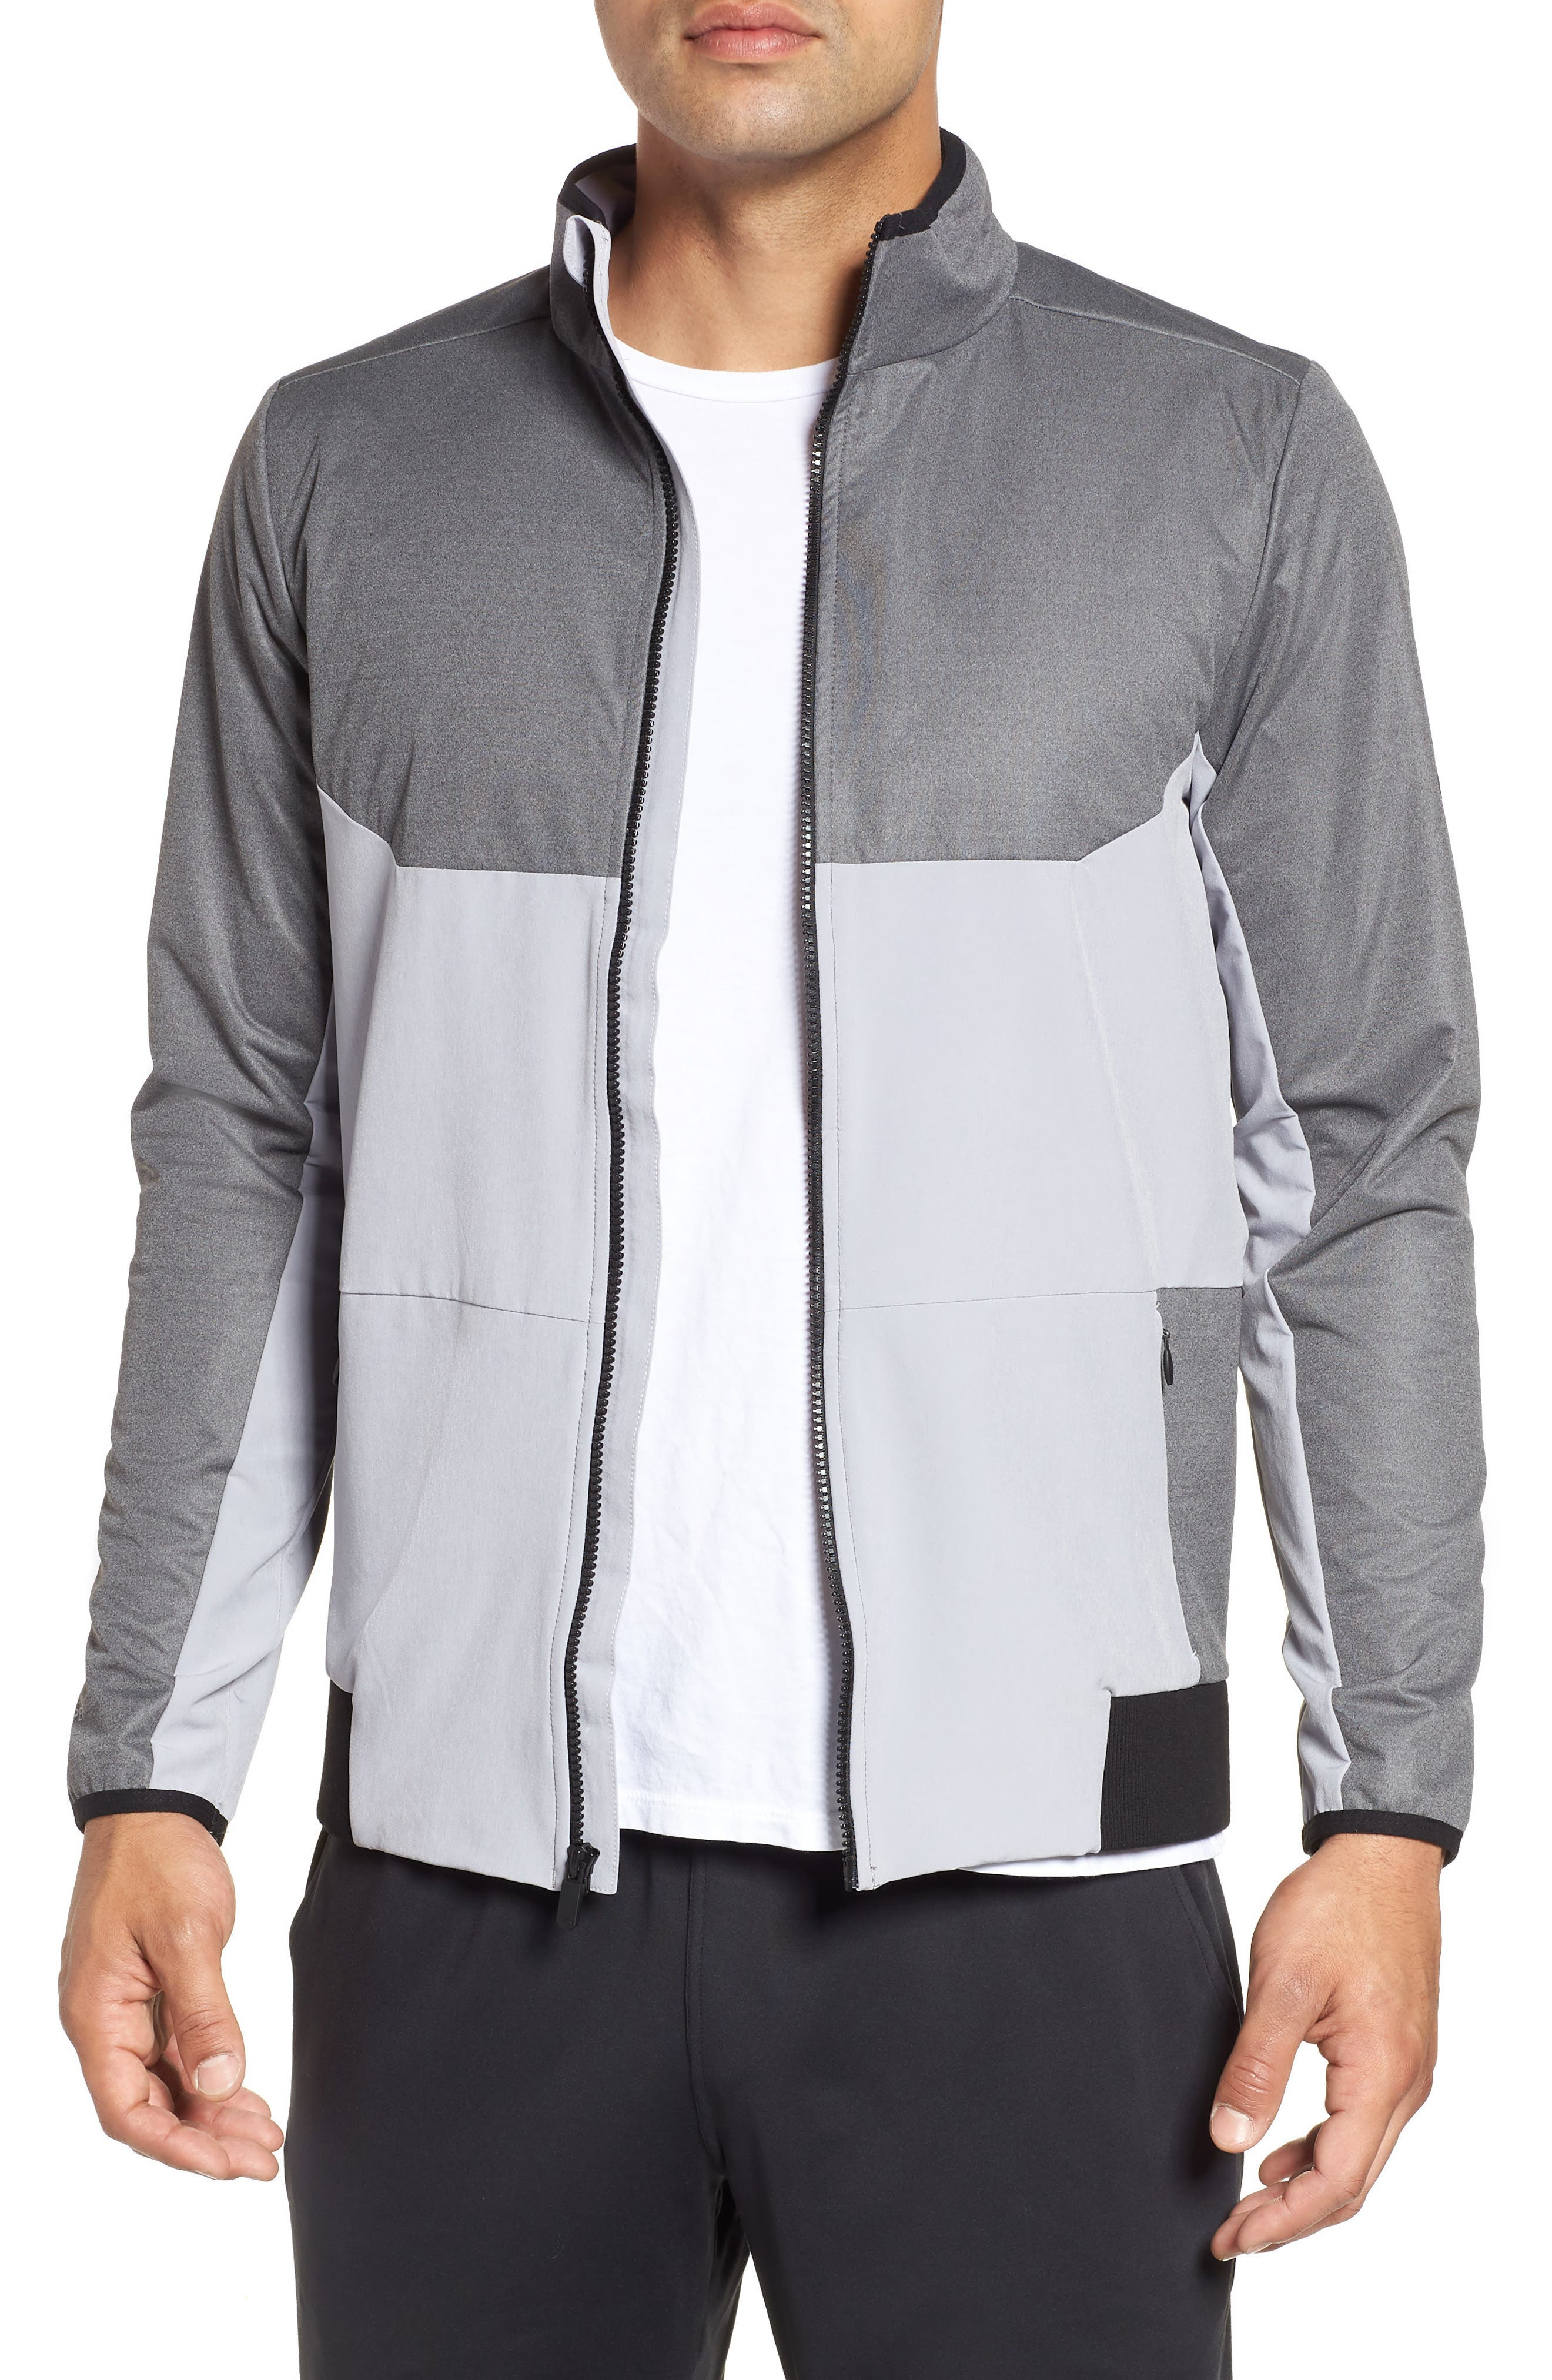 Gore<sup>®</sup> Windstopper<sup>®</sup> Full Zip Jacket,                             Main thumbnail 1, color,                             CHARCOAL / OVERCAST